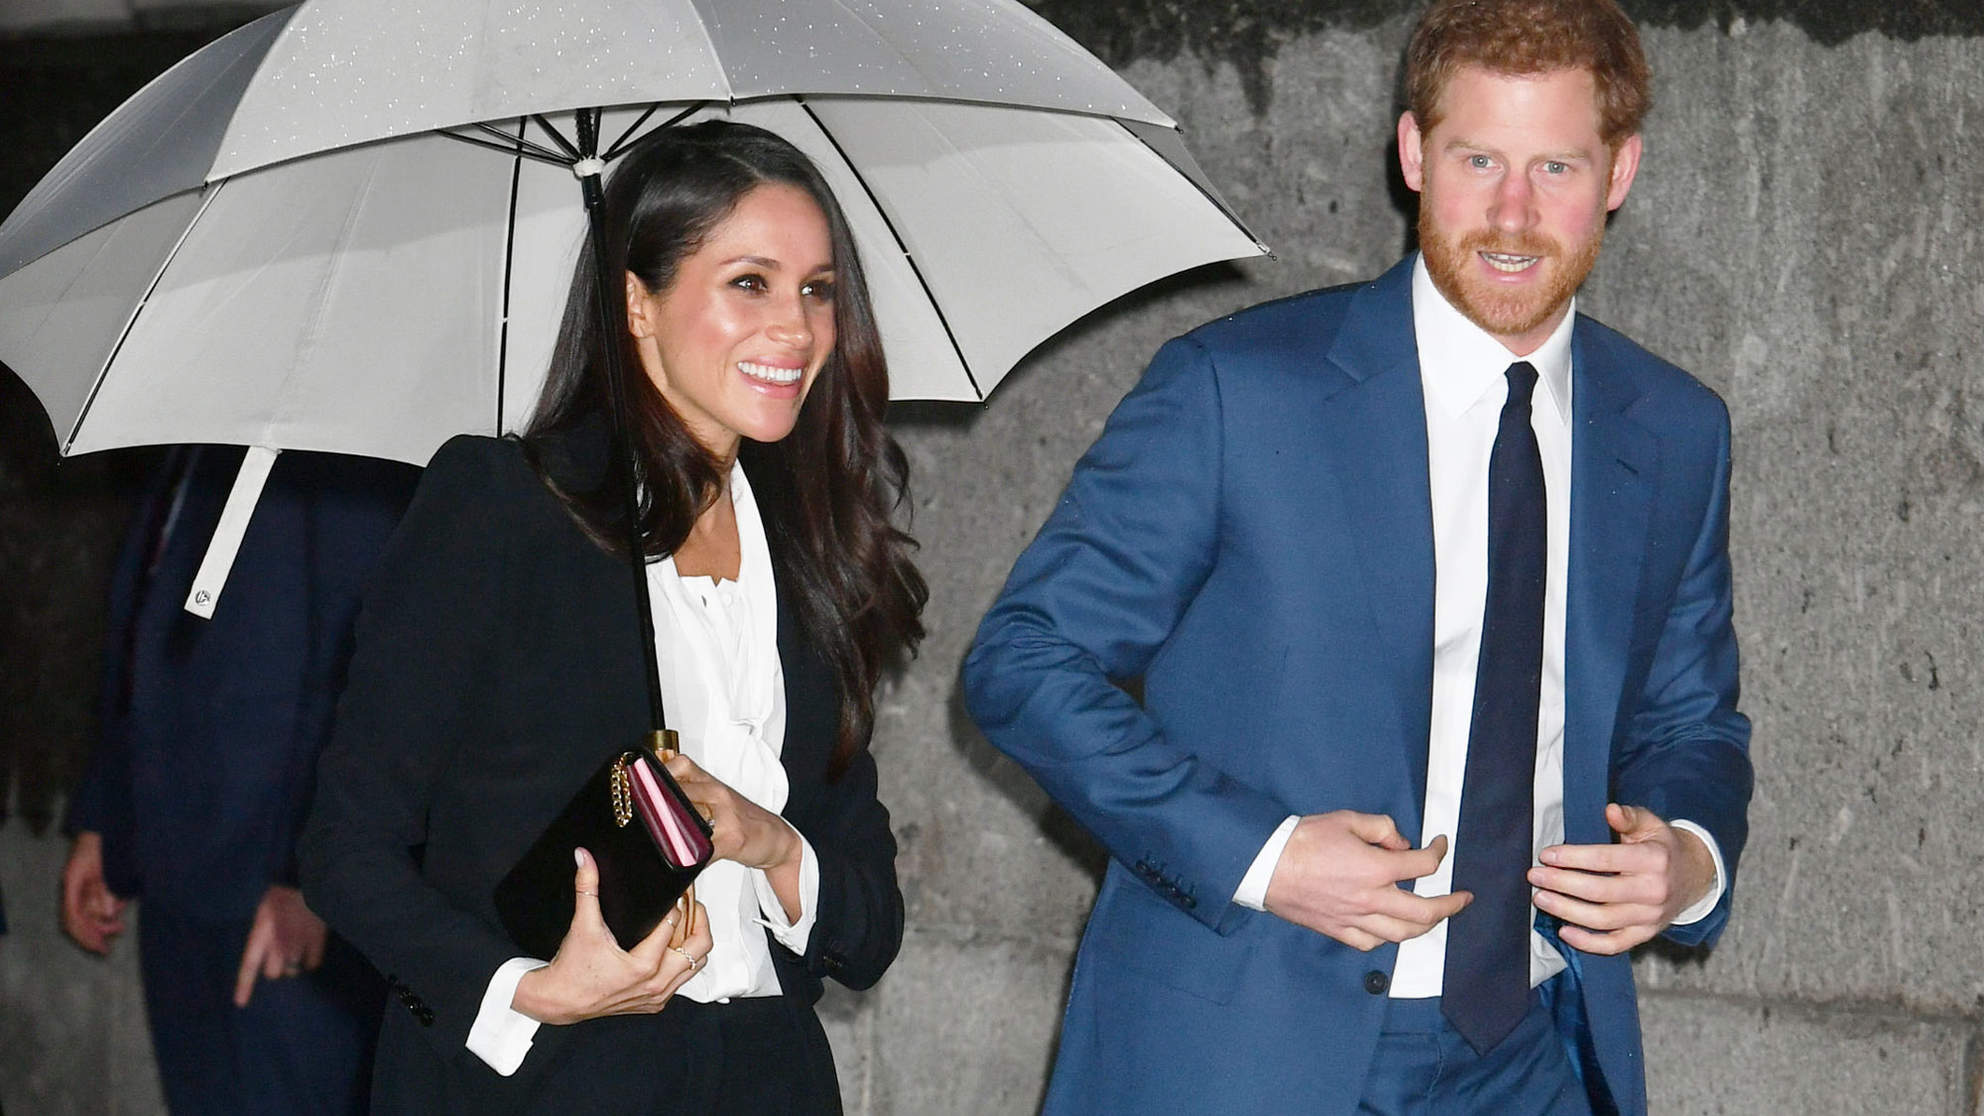 Meghan Markle Ditches the Formal Dress for a Pantsuit for Her First Royal Black-Tie Event